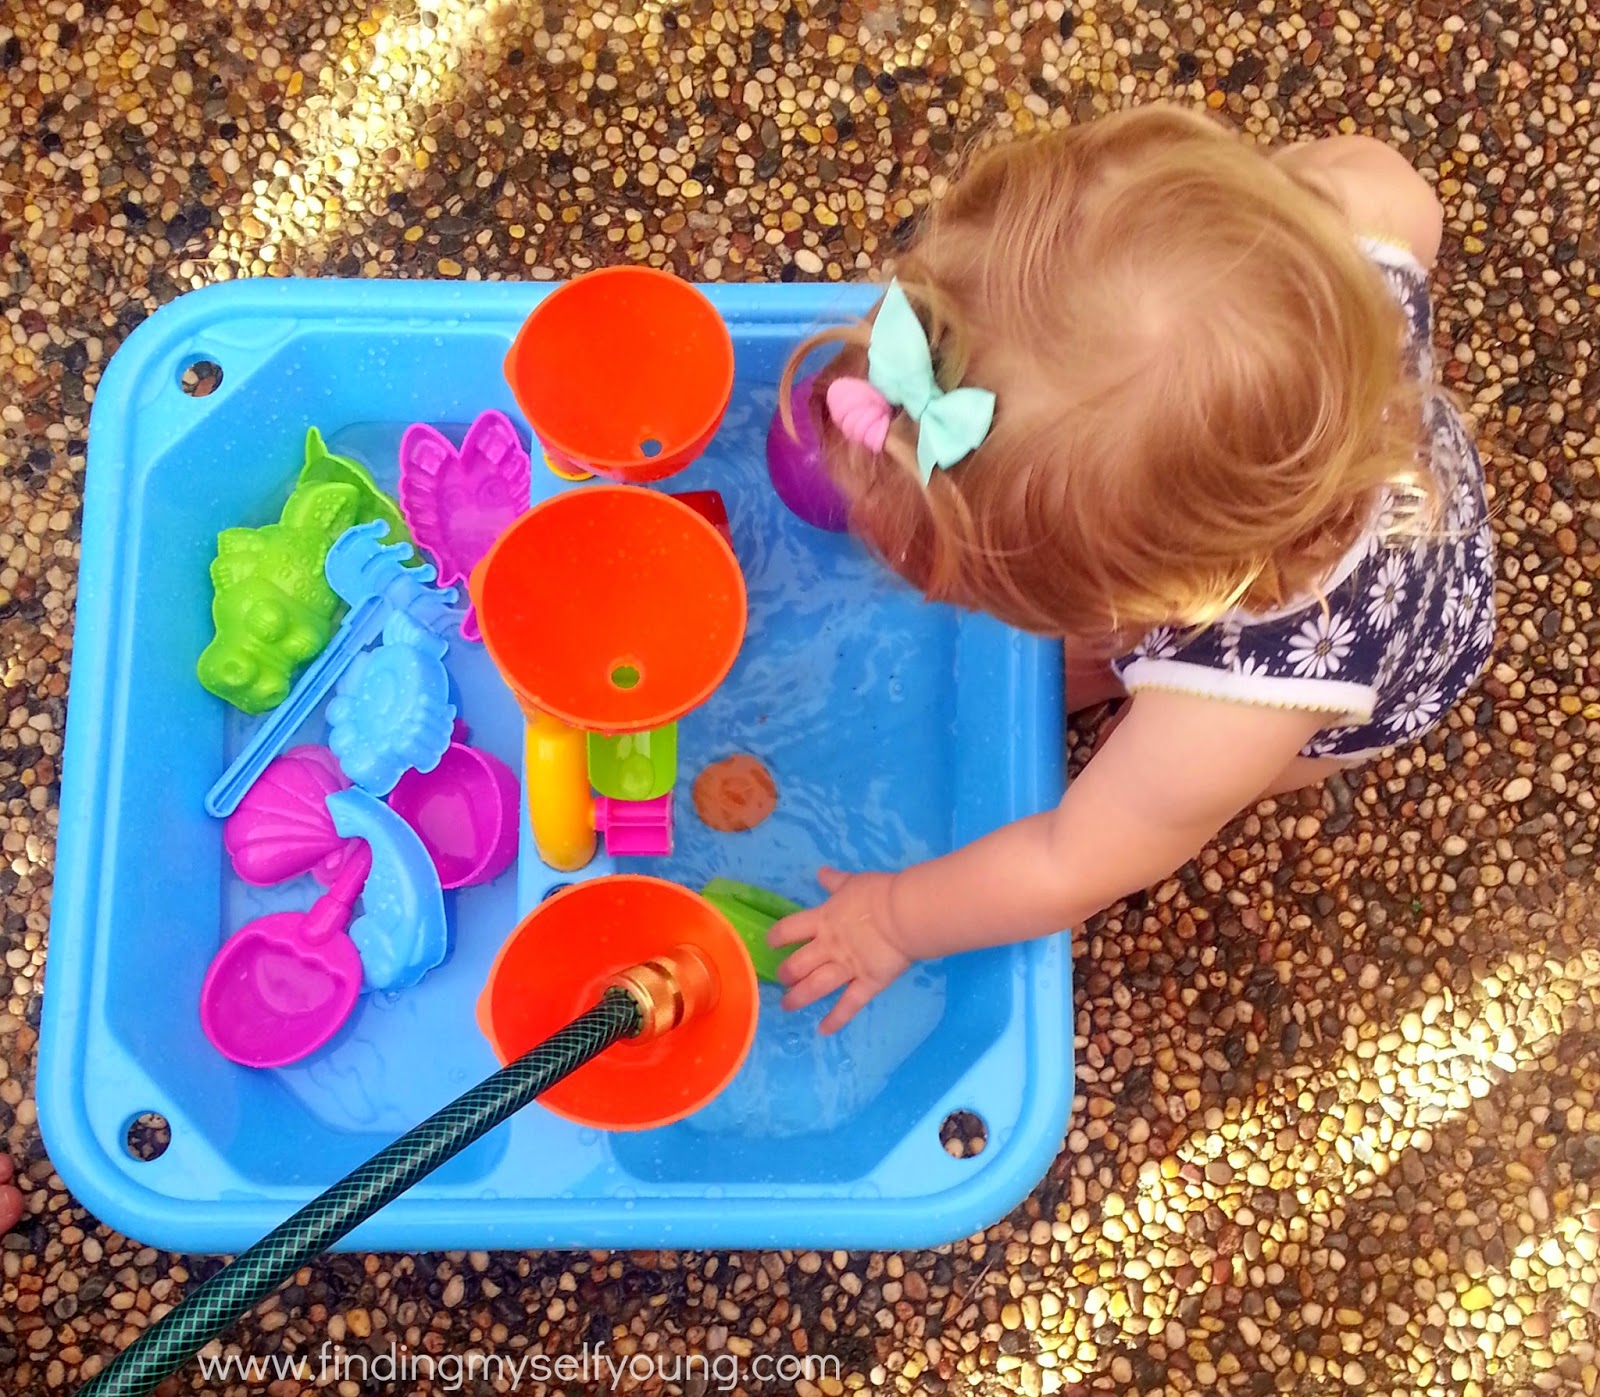 Finding Myself Young Sensory water play for toddlers